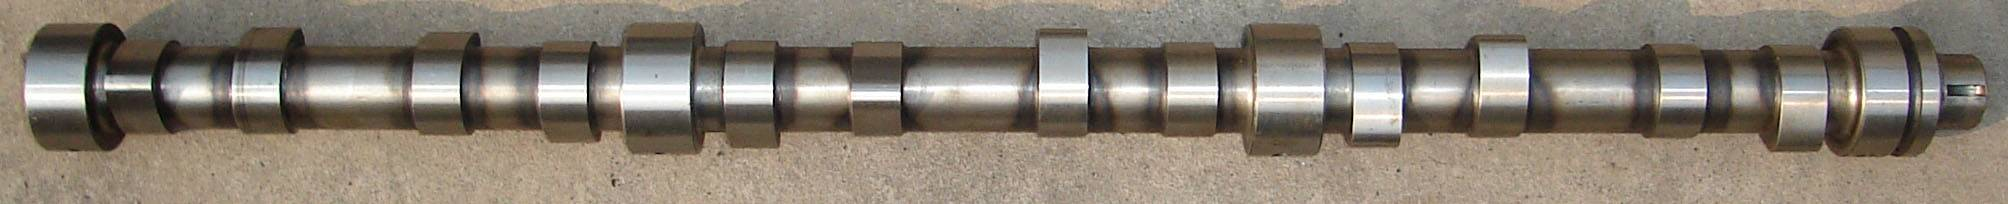 MITSUBISHI 6D14 Automotive camshaft